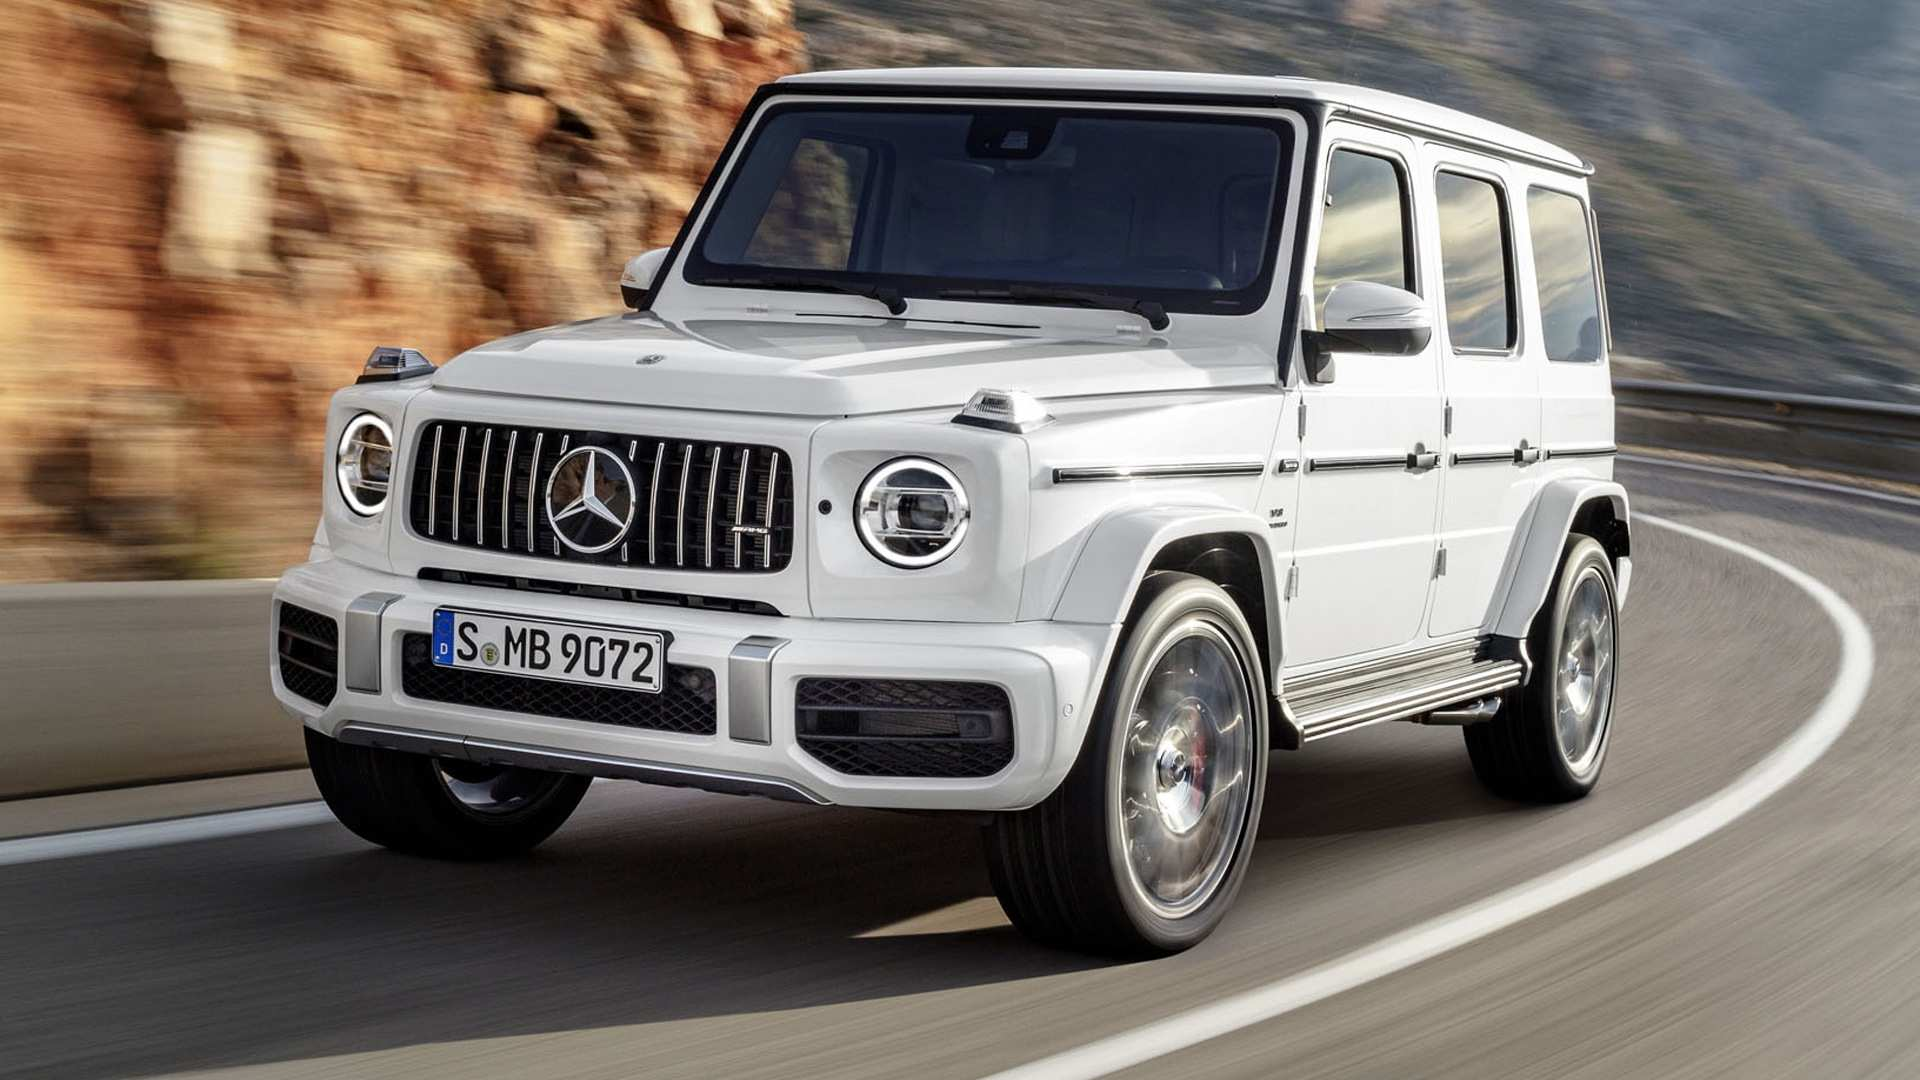 53 New Mercedes G 2020 New Concept Performance and New Engine for Mercedes G 2020 New Concept